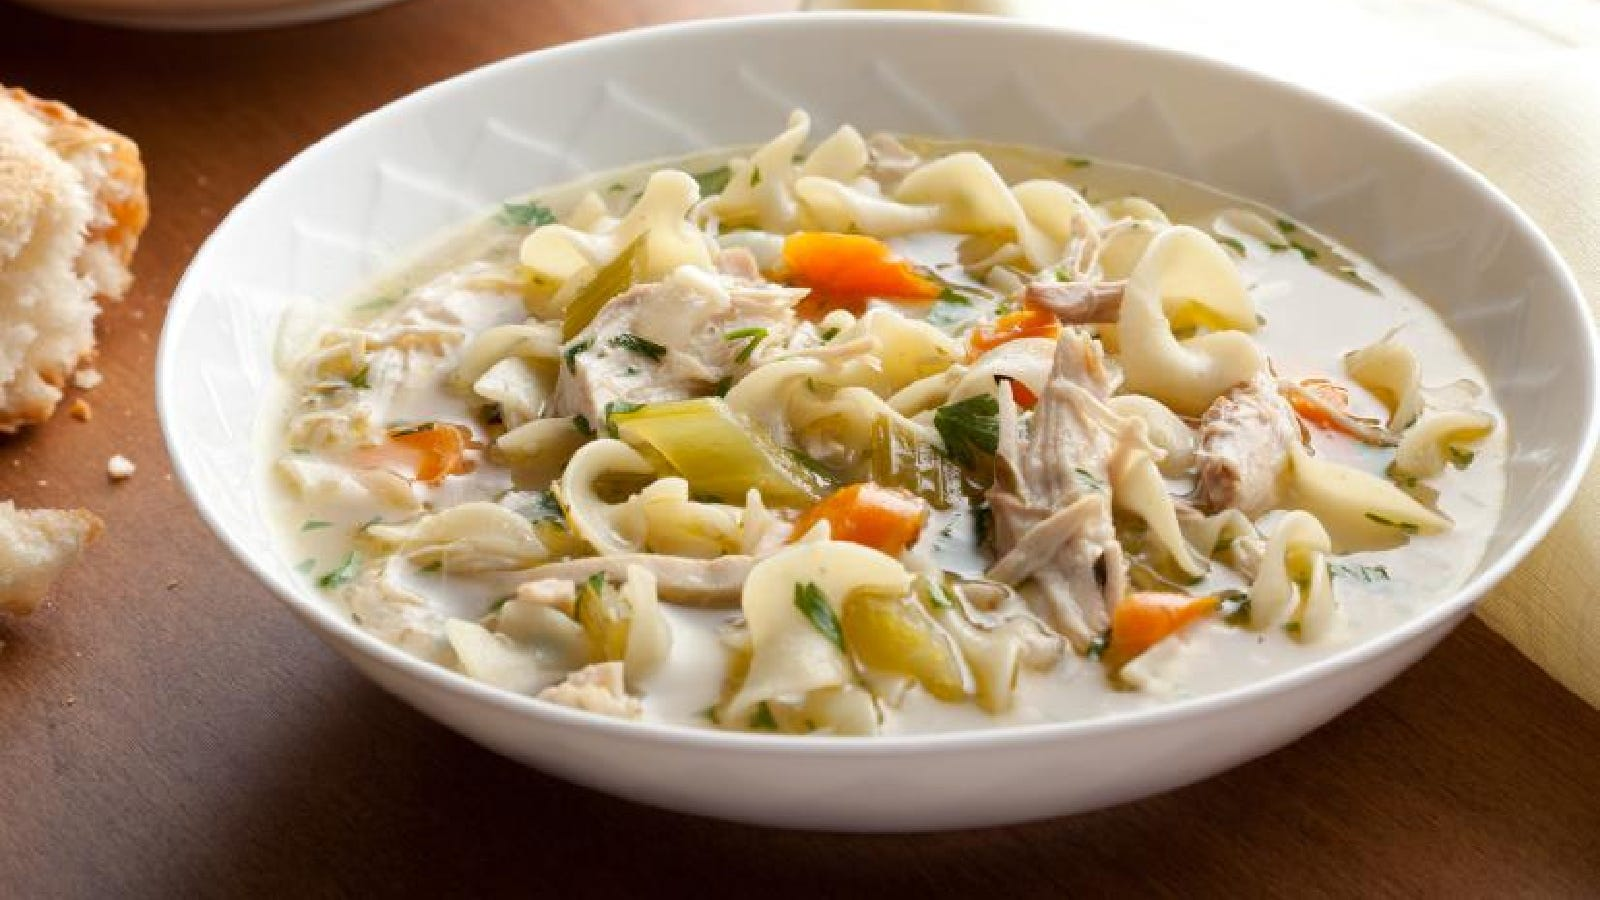 A bowl of hot chicken noodle soup filled with celery, carrots, egg noodles and parsley.